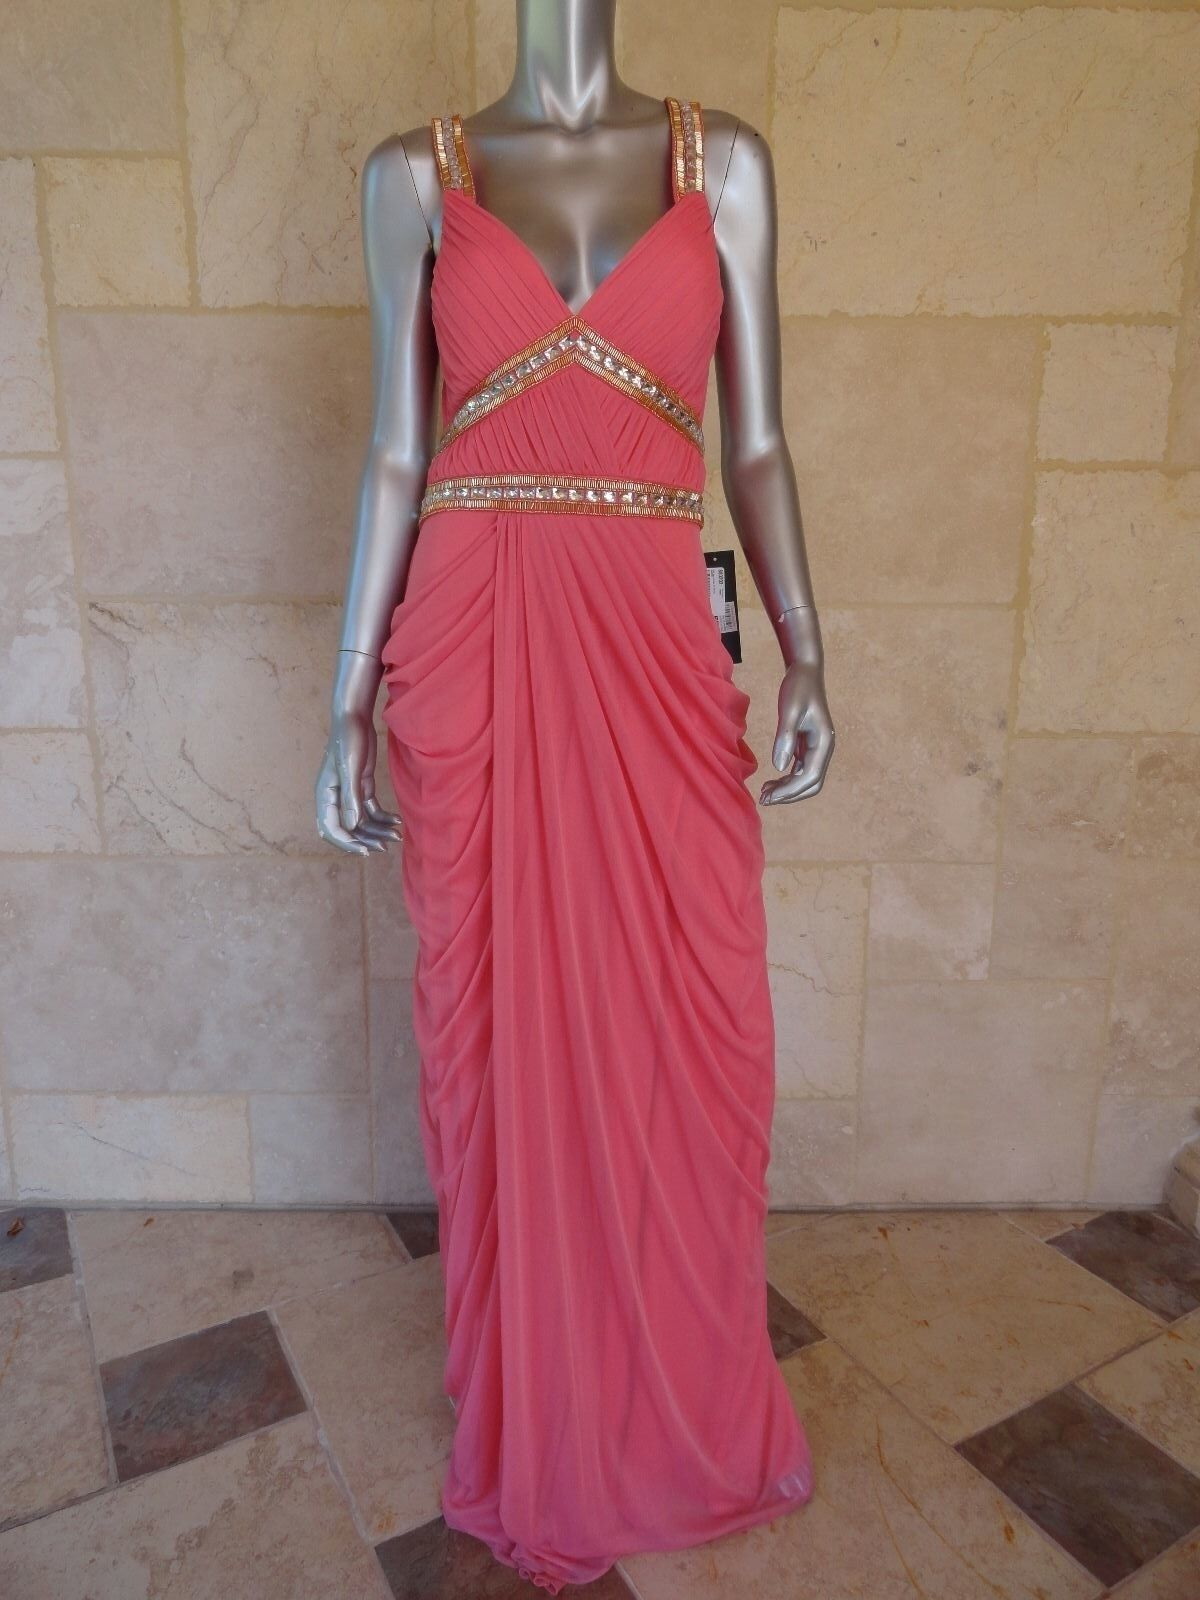 Boutique Rosa Tricot Sleeveless Full Length Evening Gown Dress Sz 10 NWT